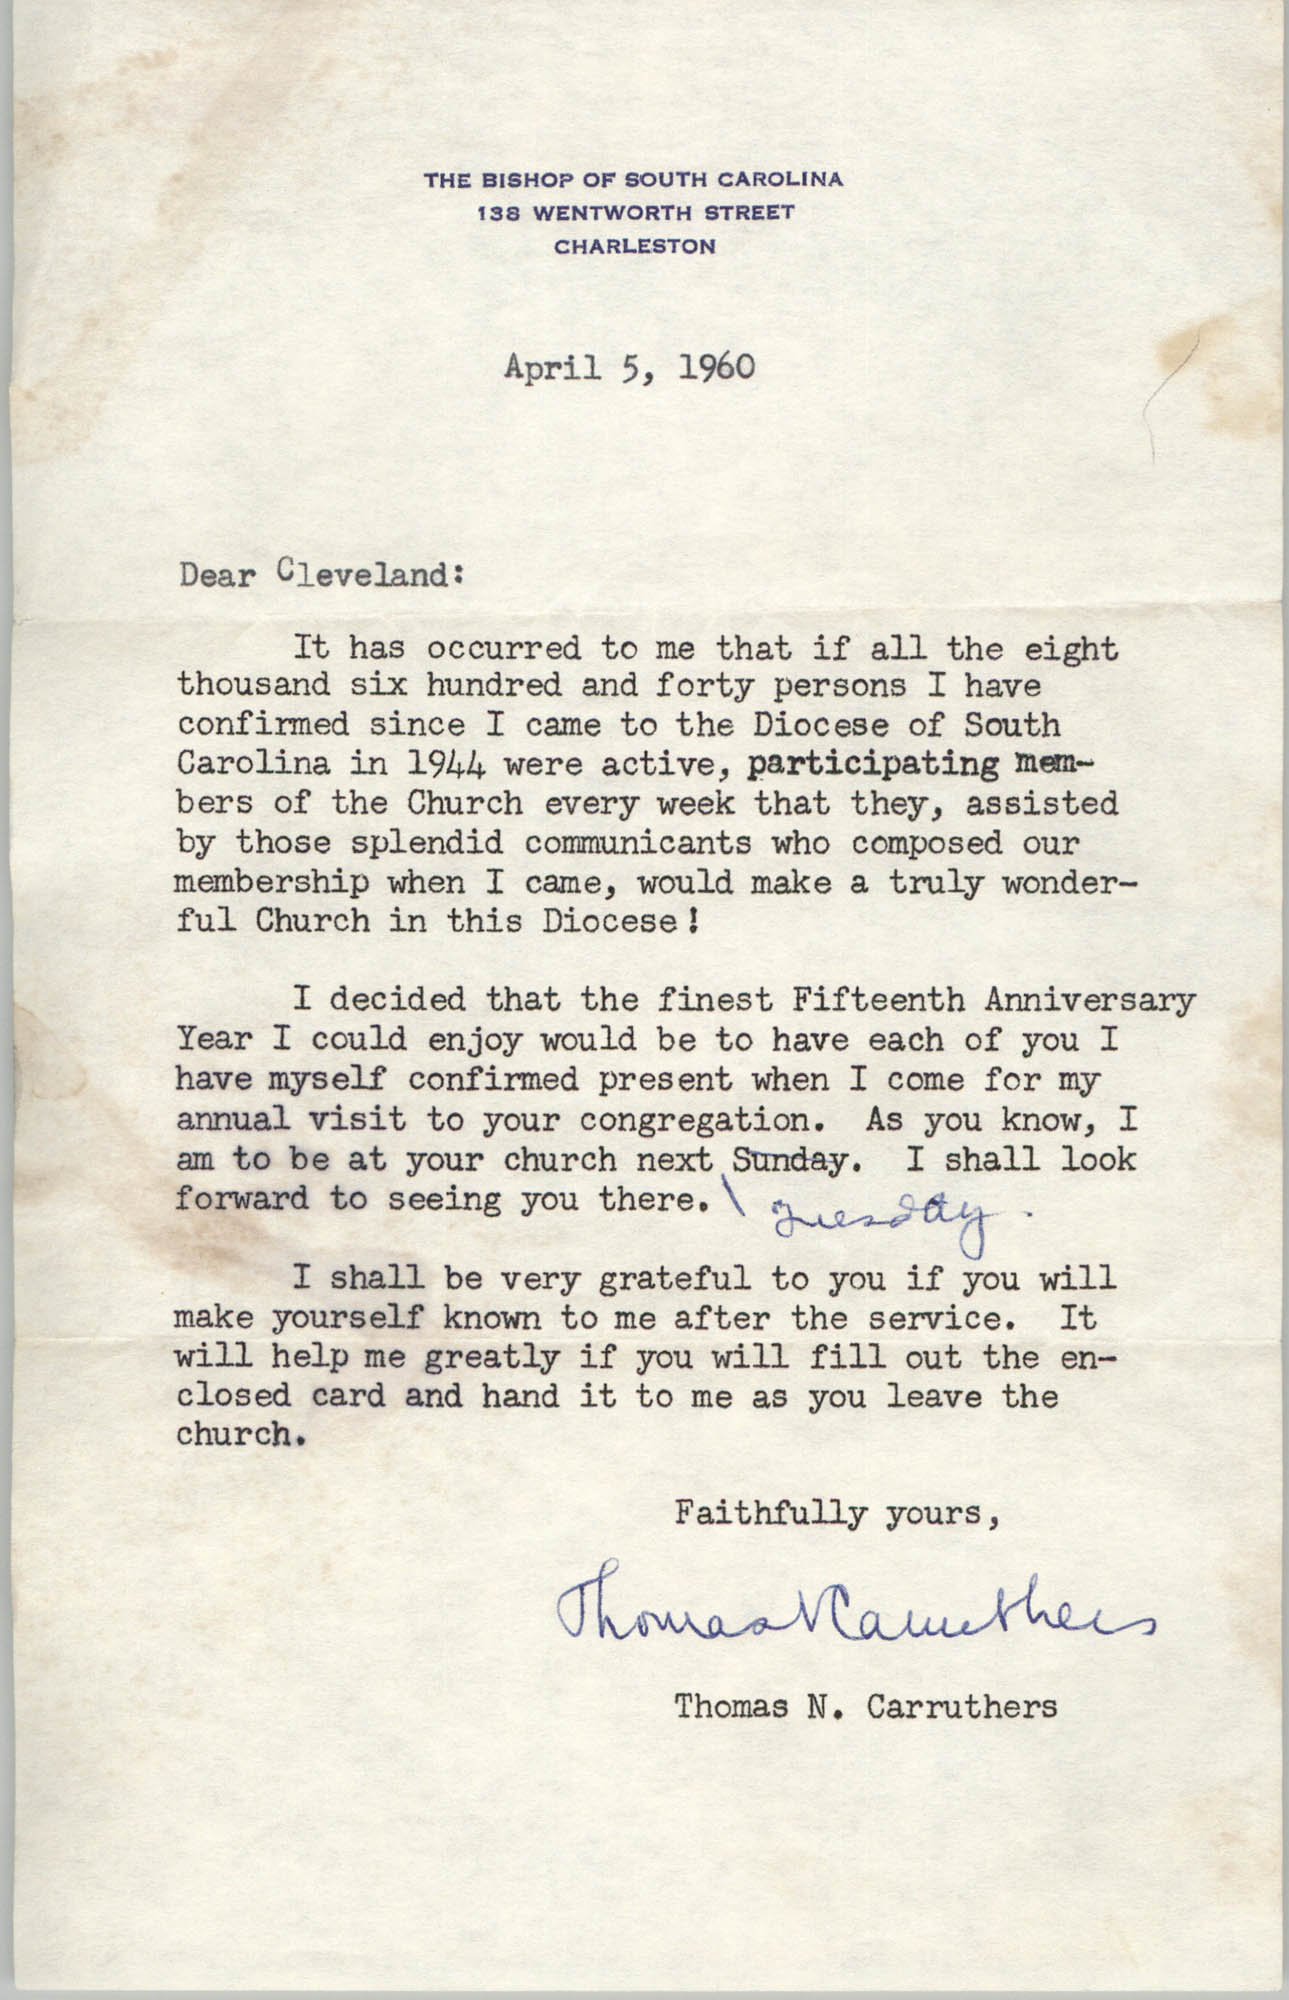 Letter from Thomas N. Carruthers to Cleveland Sellers, April 5, 1960